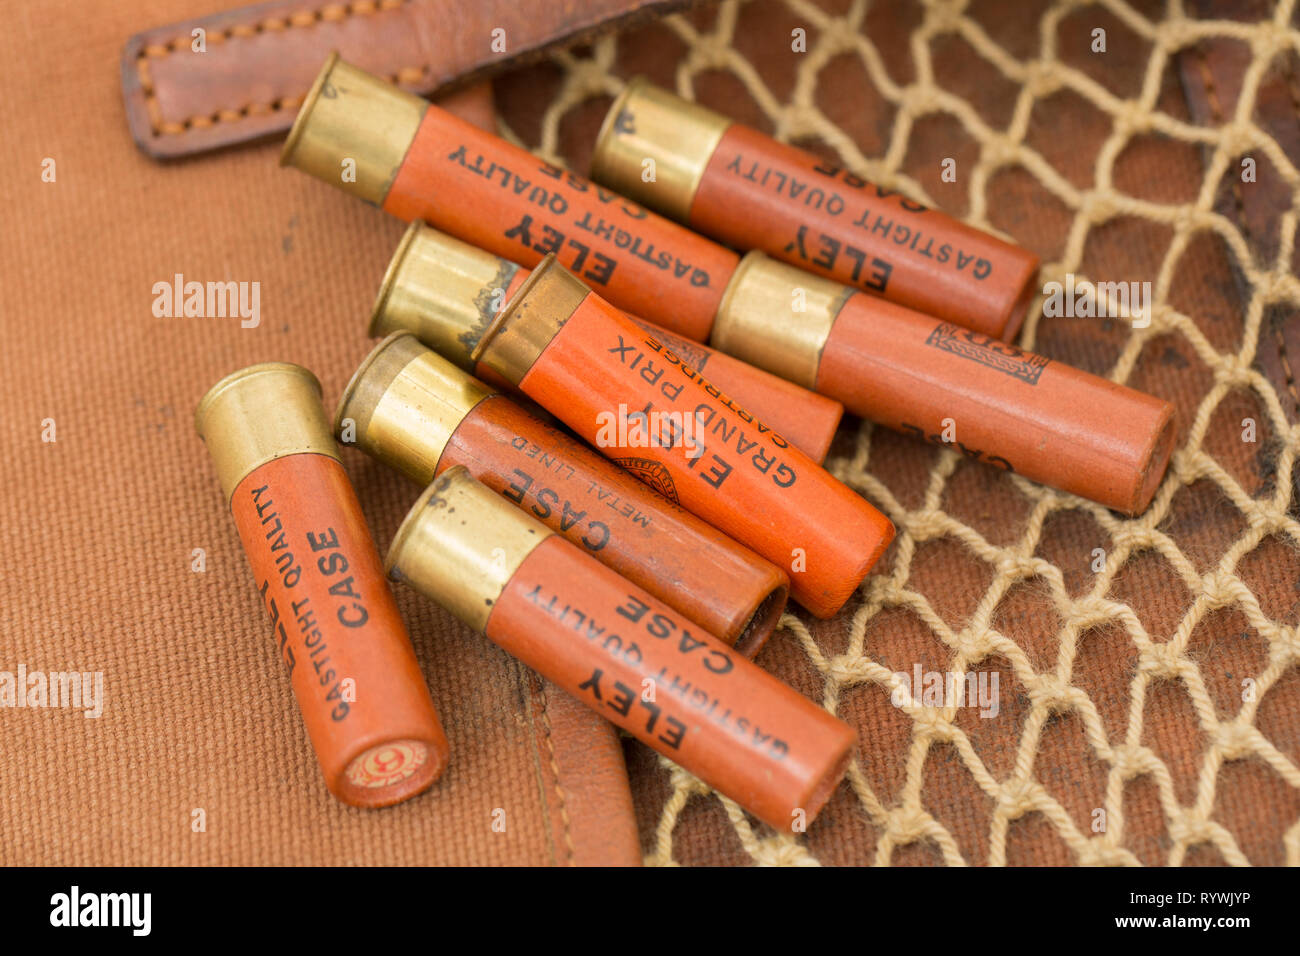 Old Eley paper cased 28-bore shotgun cartridges with rolled turnover closures loaded with leadshot. Collecting shotgun cartridges is a hobby that can  - Stock Image